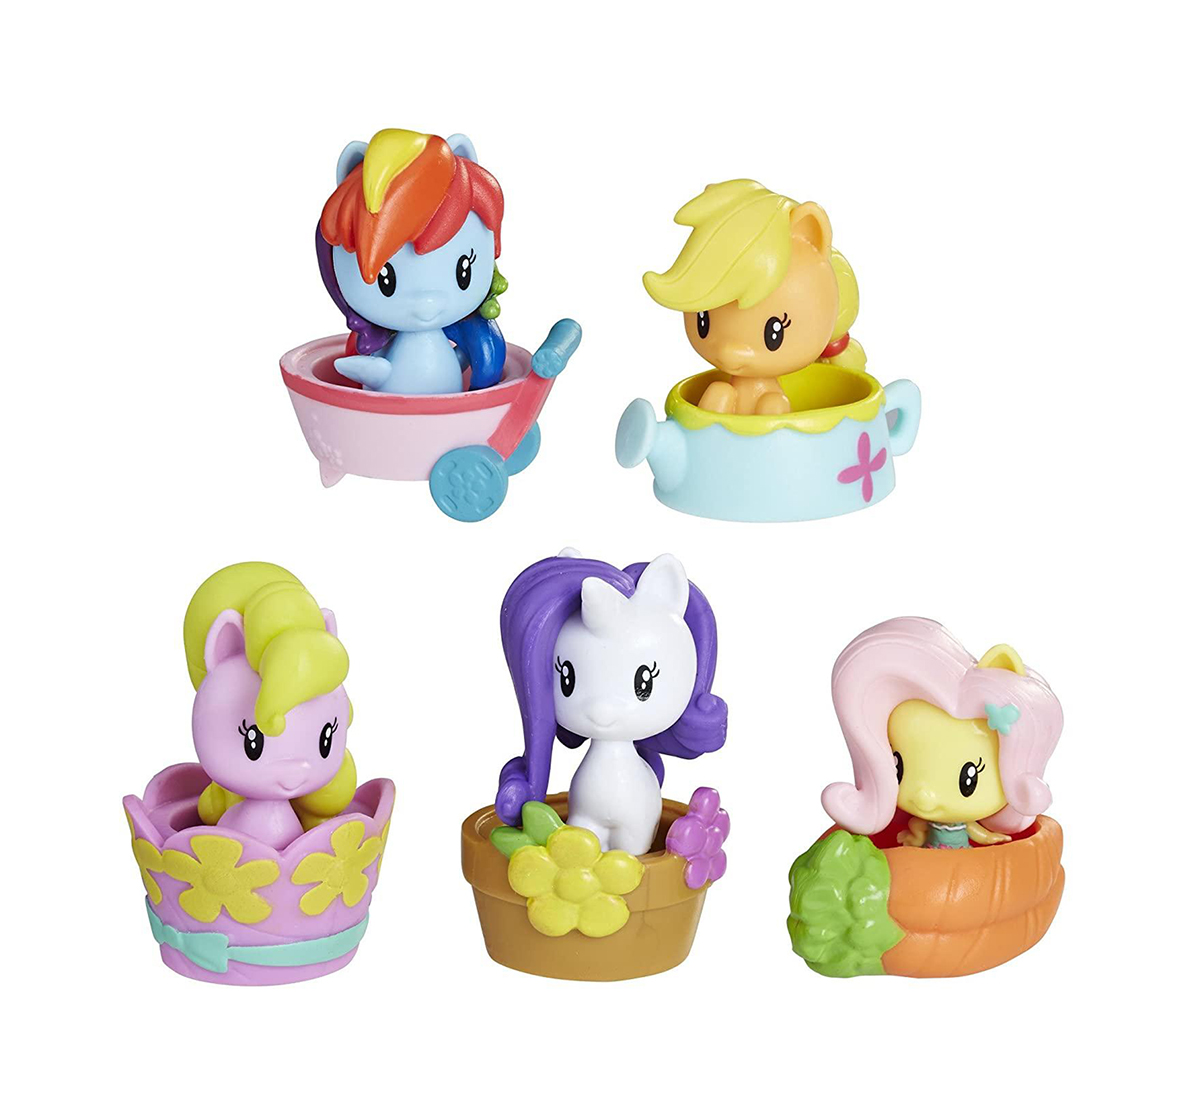 My Little Pony | My Little Pony Cutie Mark Crew Assorted Dolls & Accessories for Girls age 3Y+